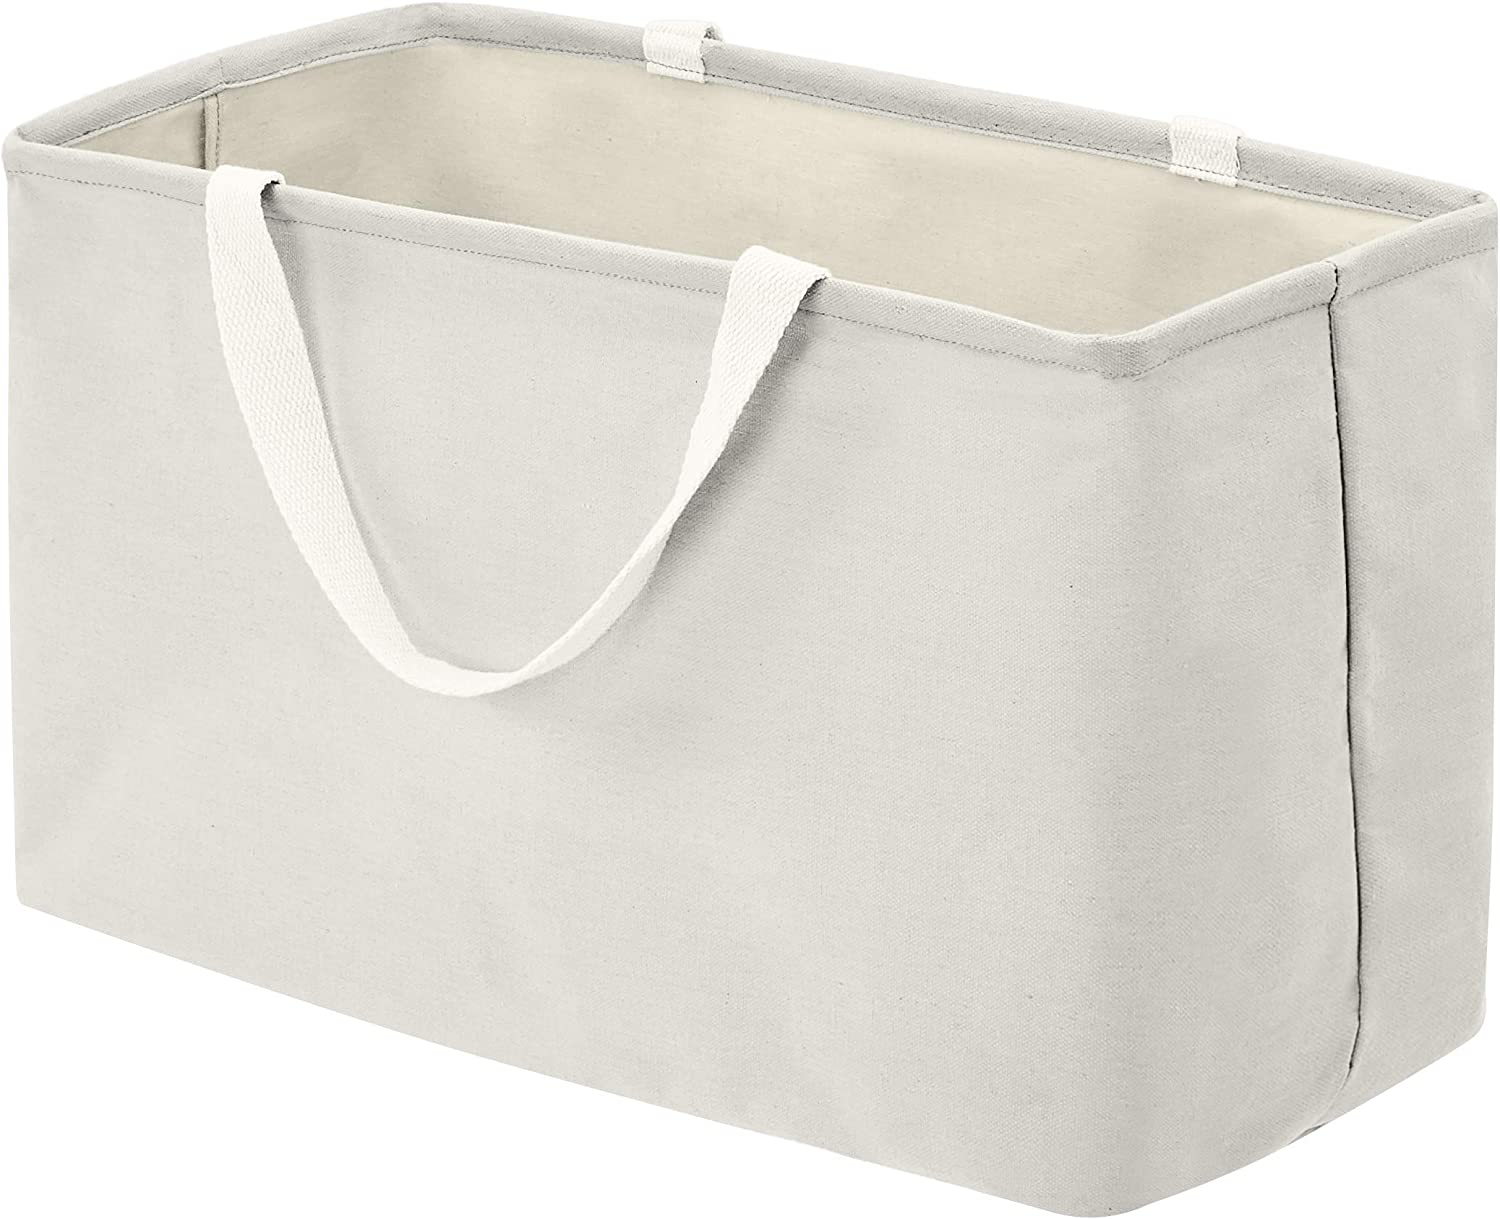 AmazonBasics Fabric Storage Bin - Large Rectangle, Light Grey